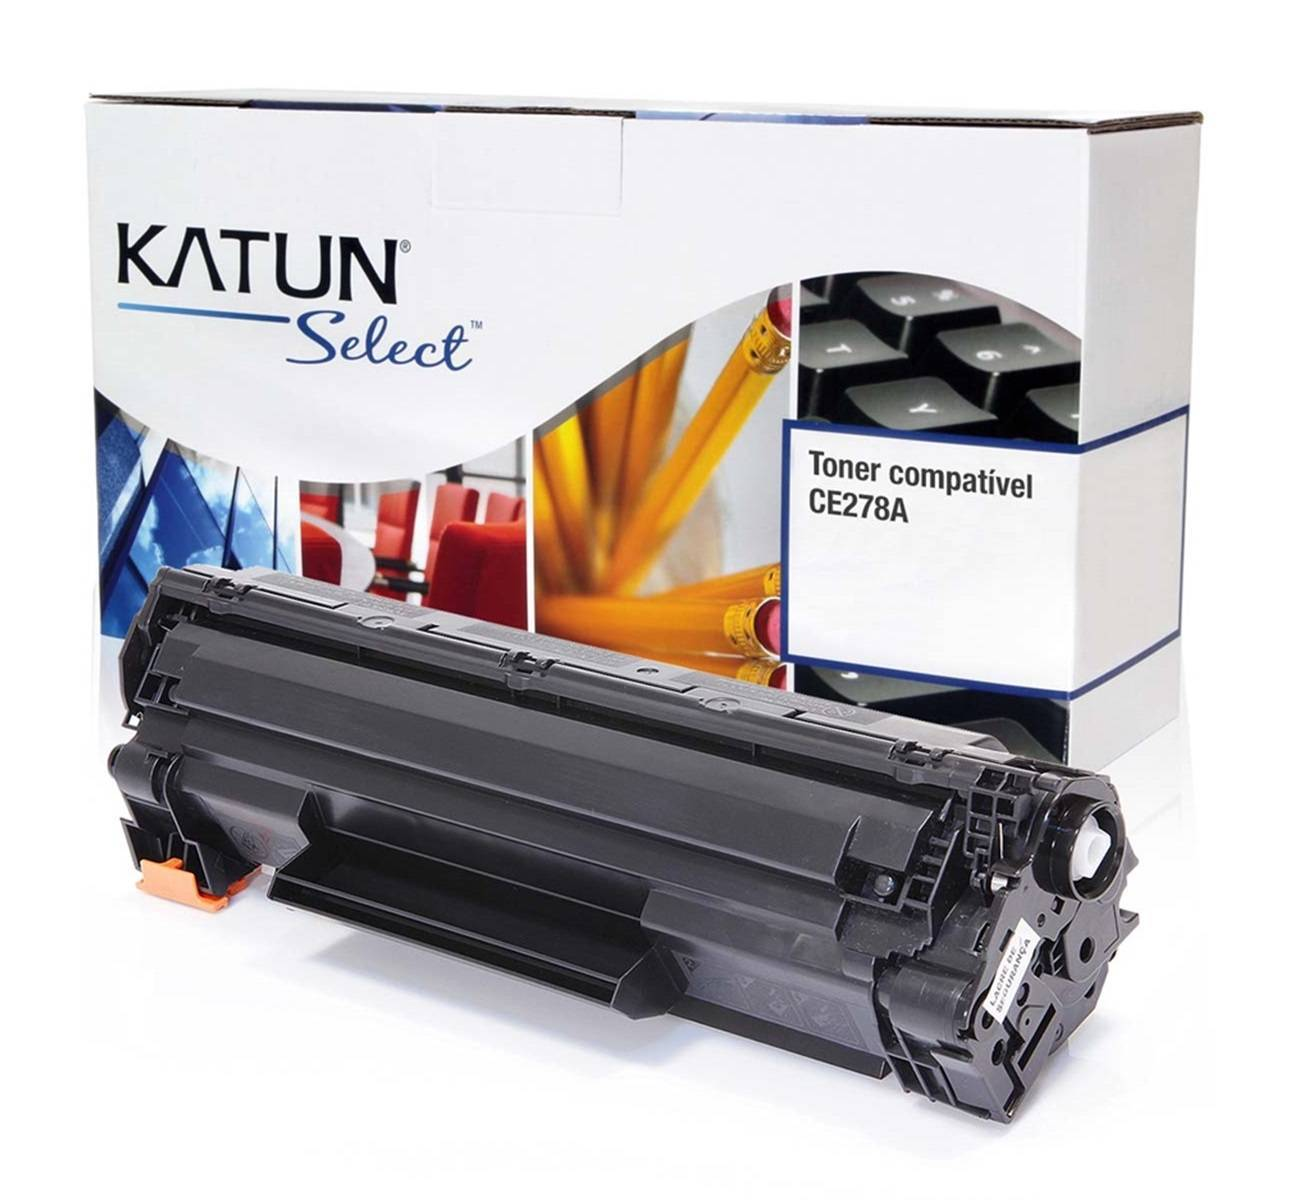 CARTUCHO DE TONER PRETO PARA HP LJ P1606 / CE278A KATUN SELECT 2.1K - PRINTER DO BRASIL